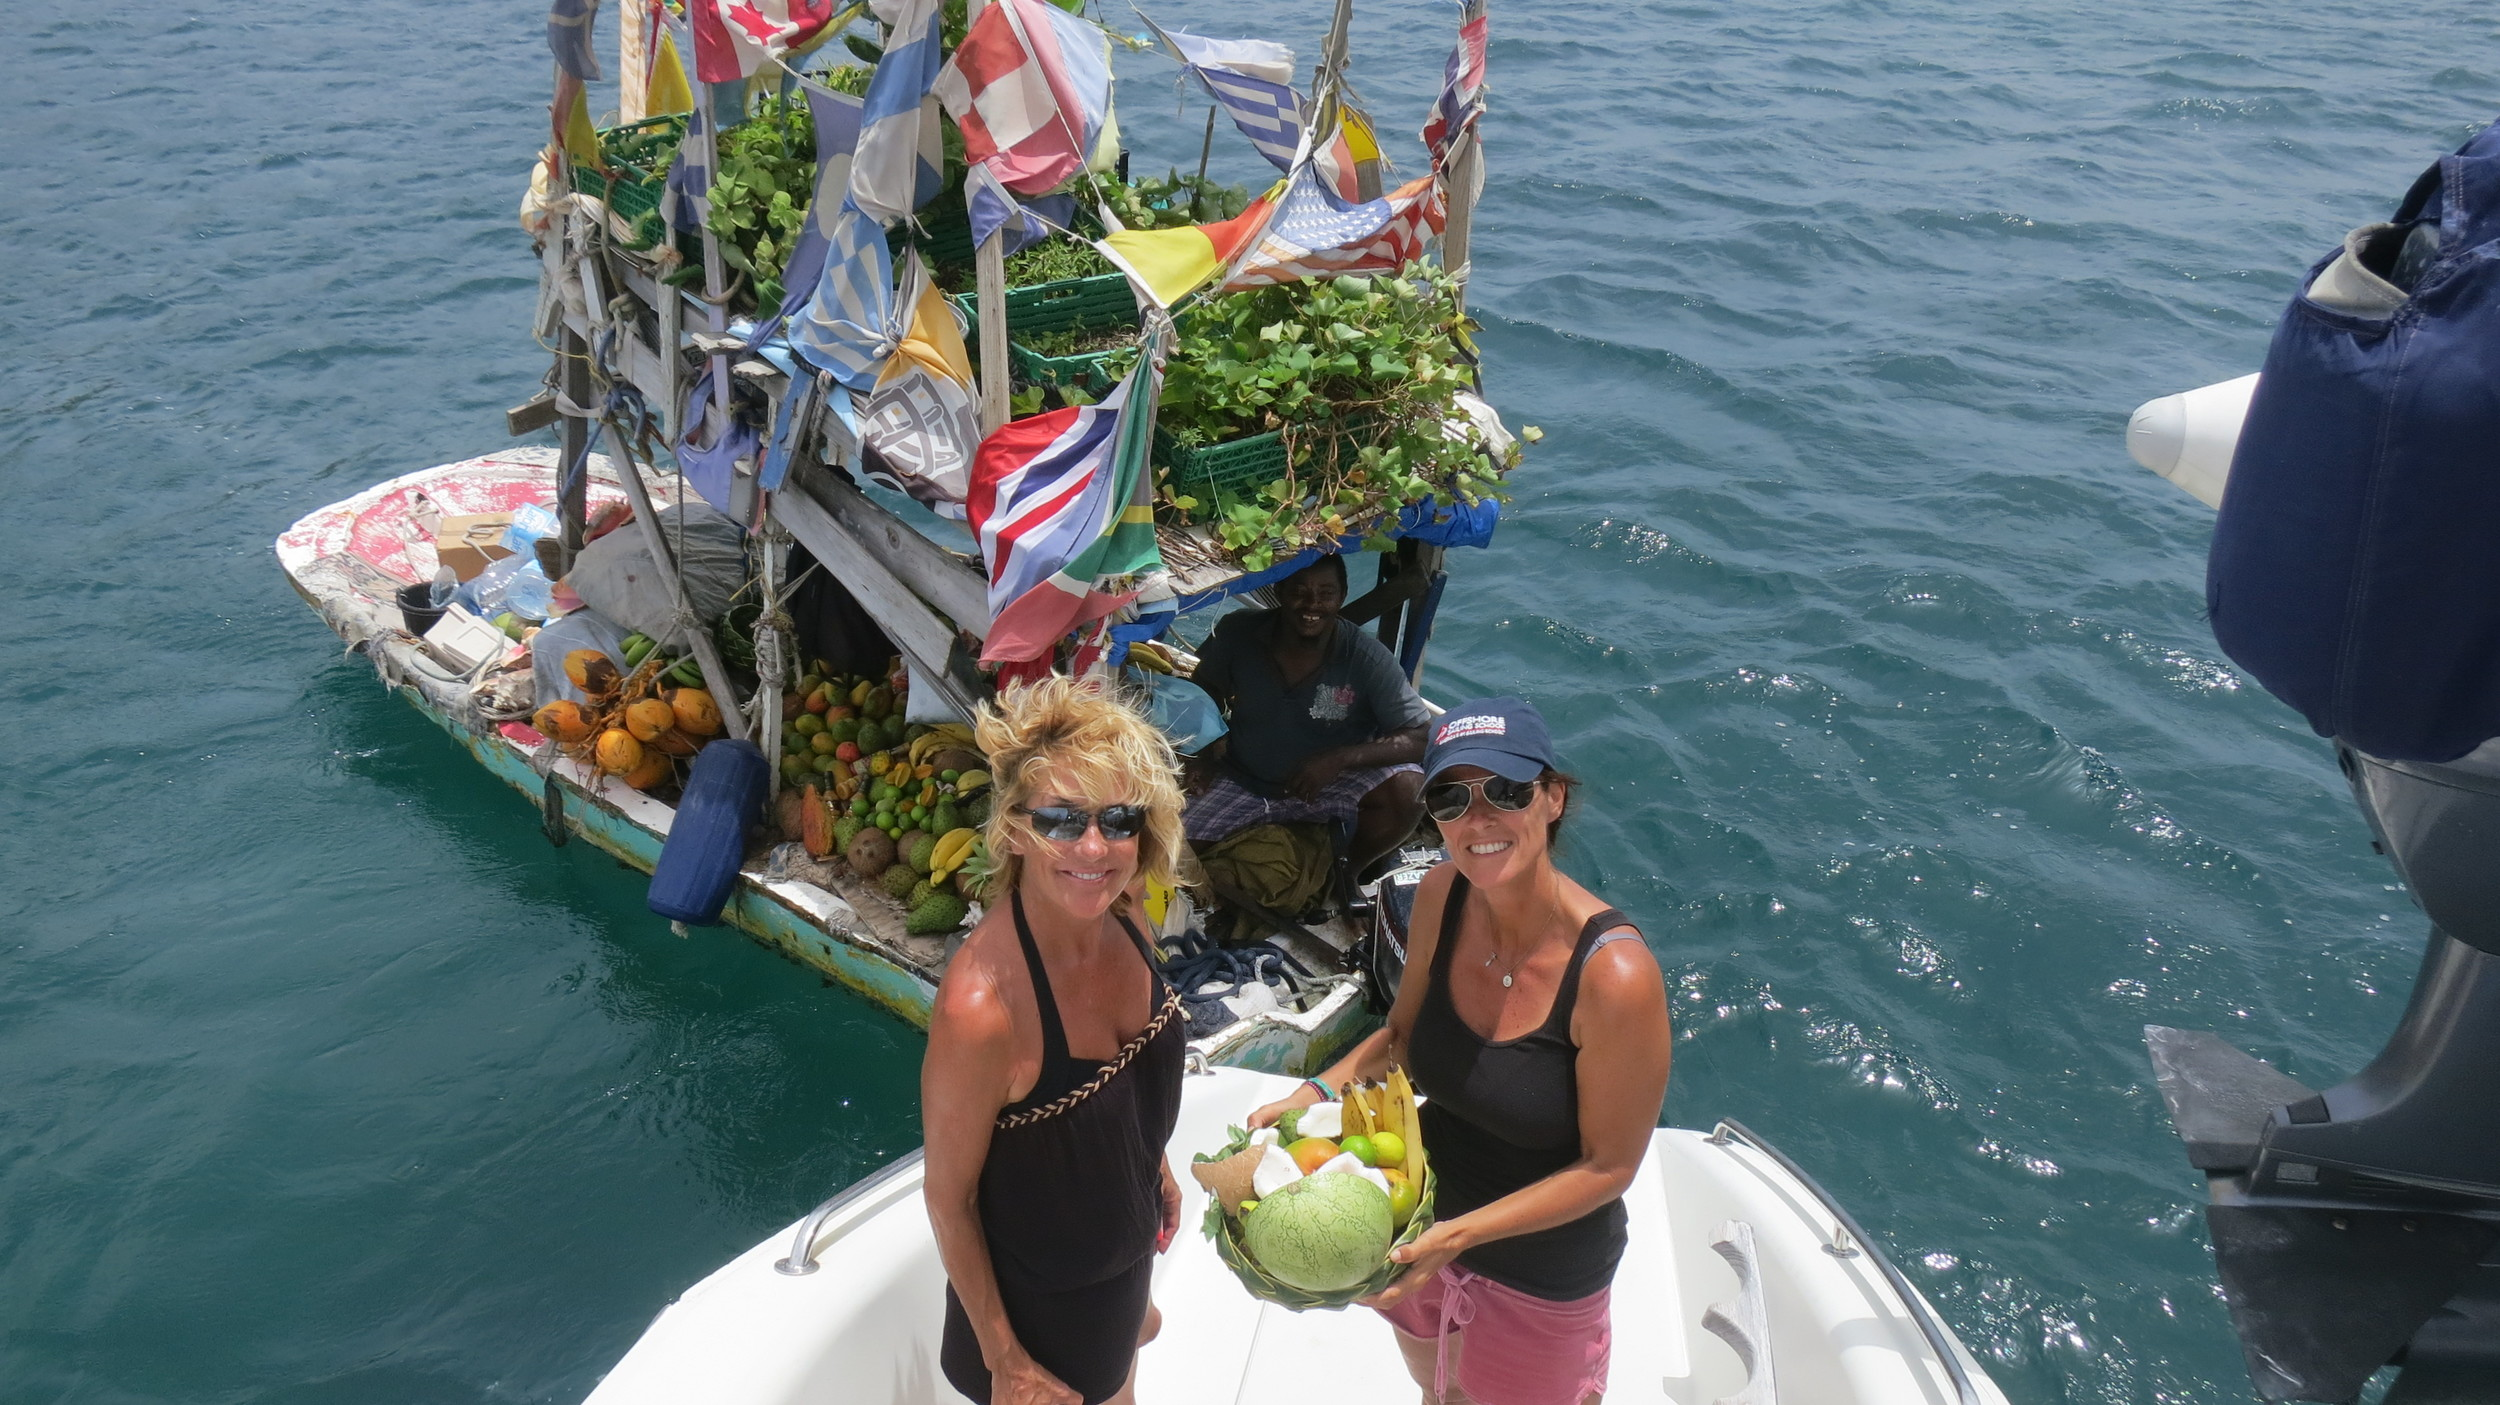 Buying local produce from Gregory.  Rodney Bay, St. Lucia.